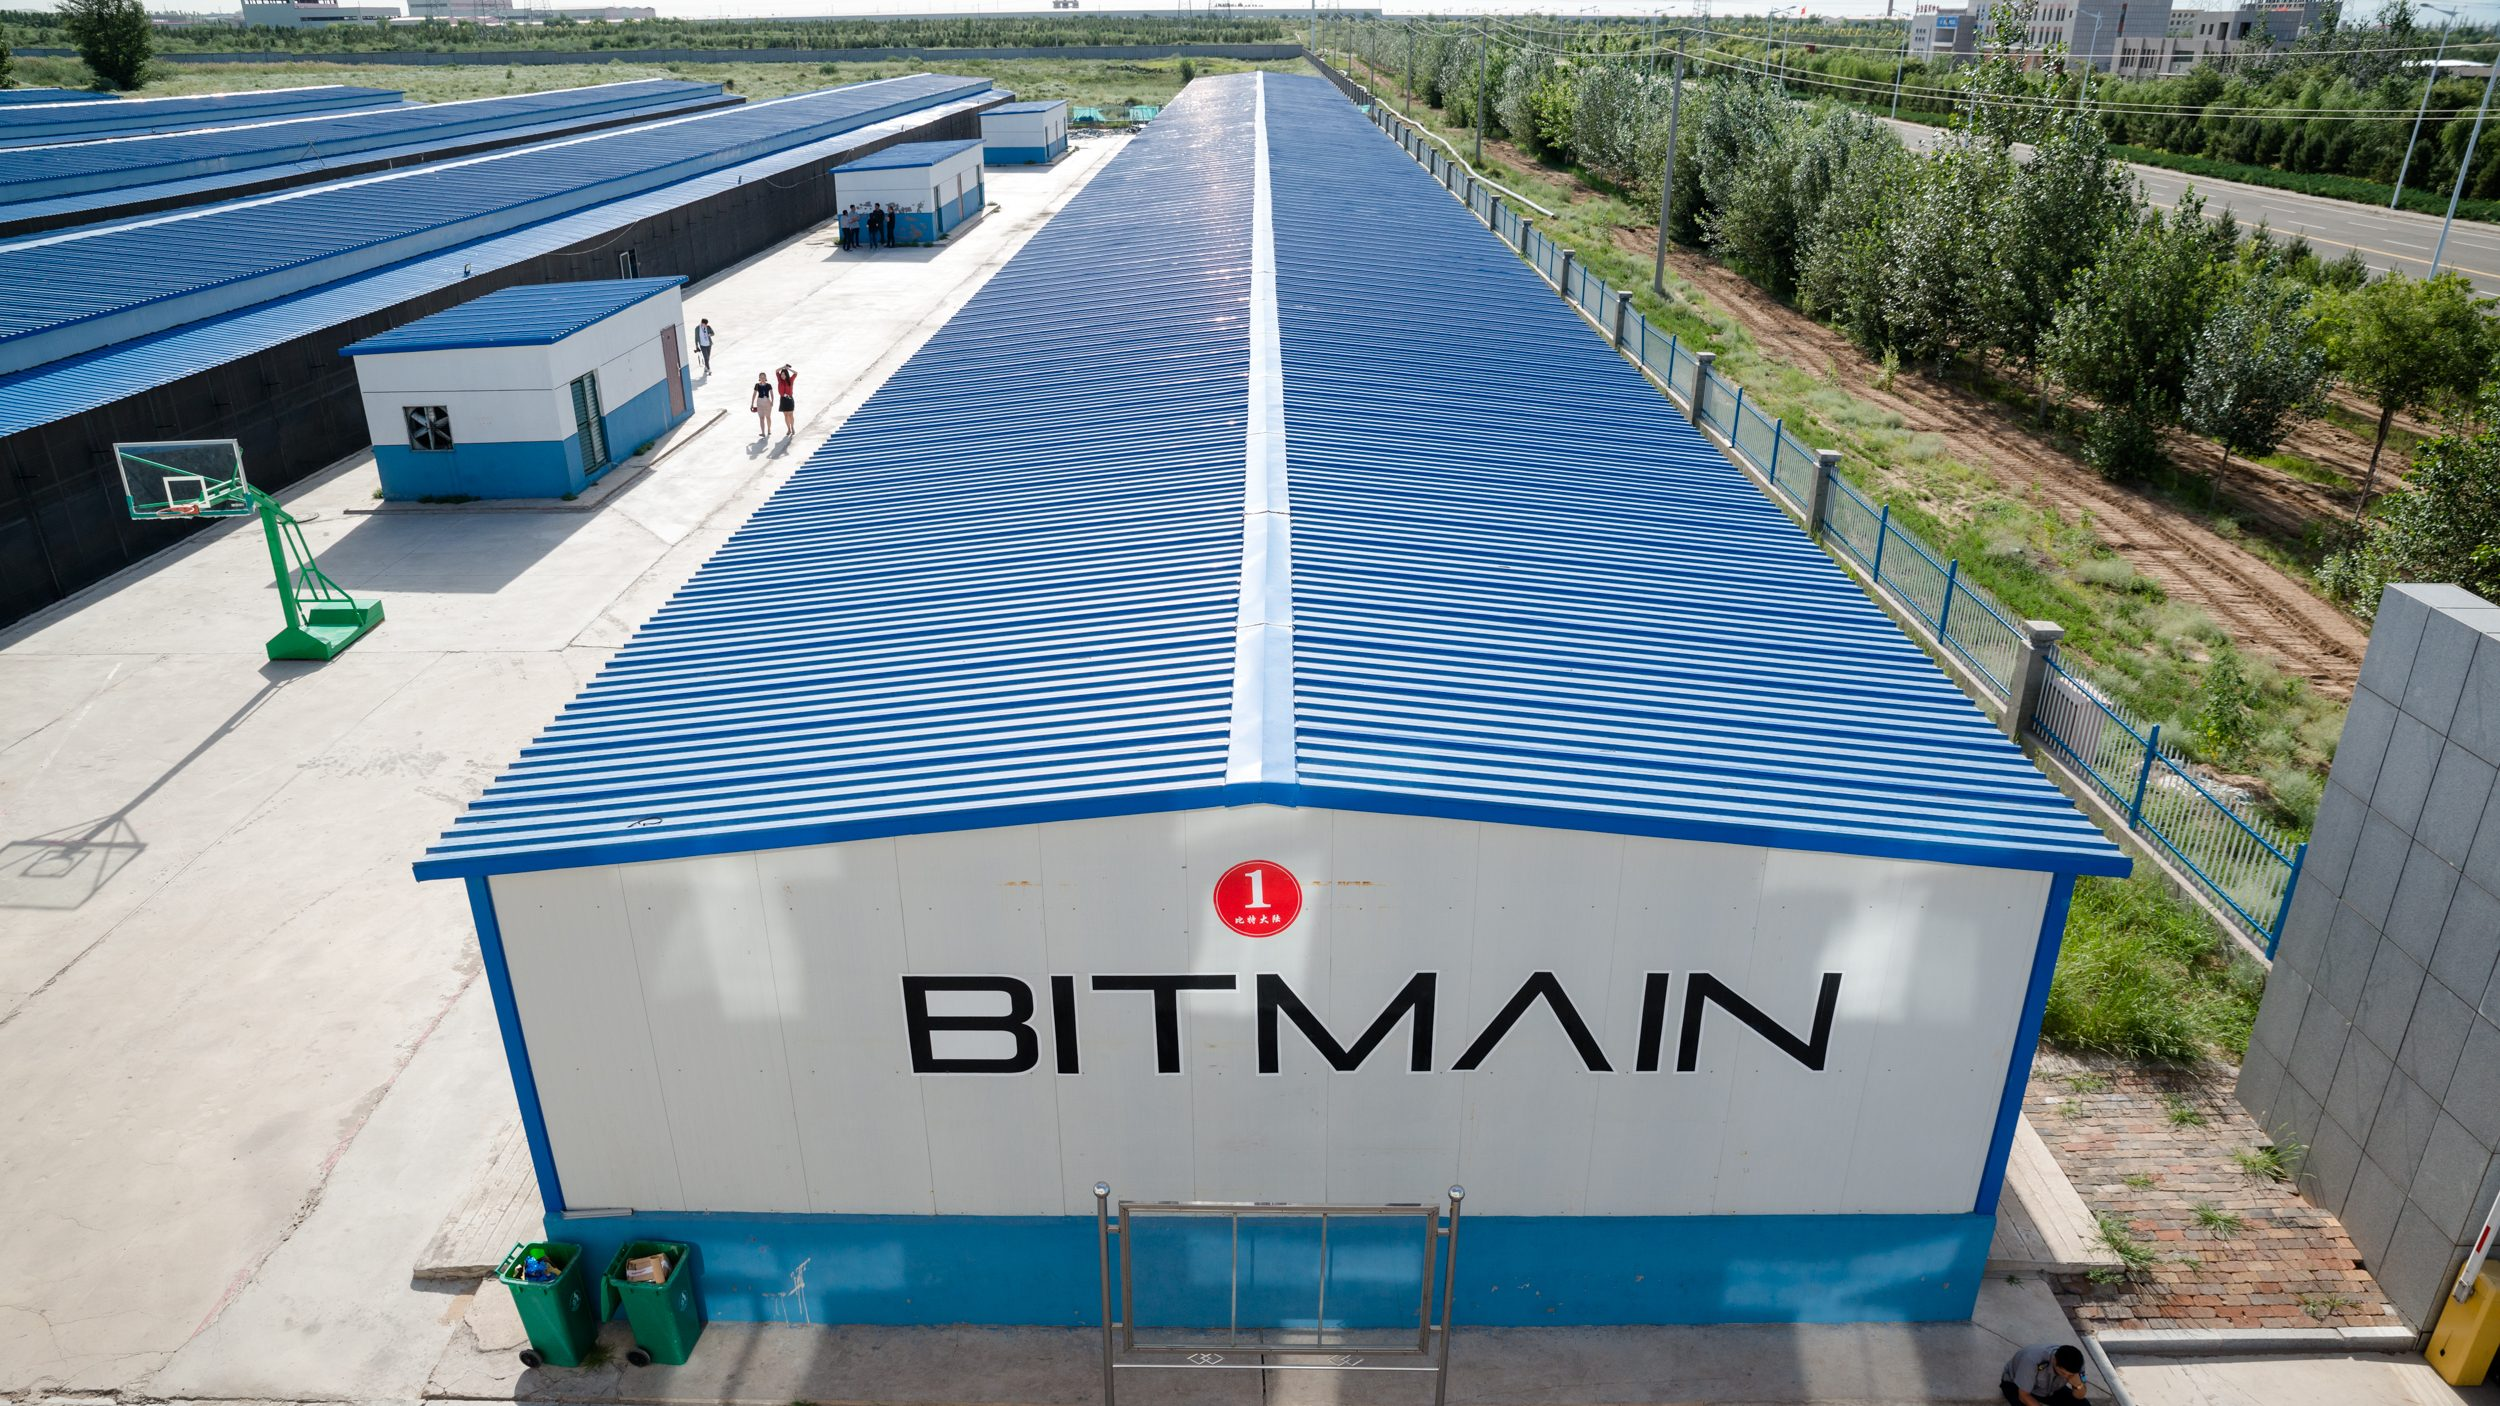 Bitmain's mine in Ordos, Inner Mongolia, China